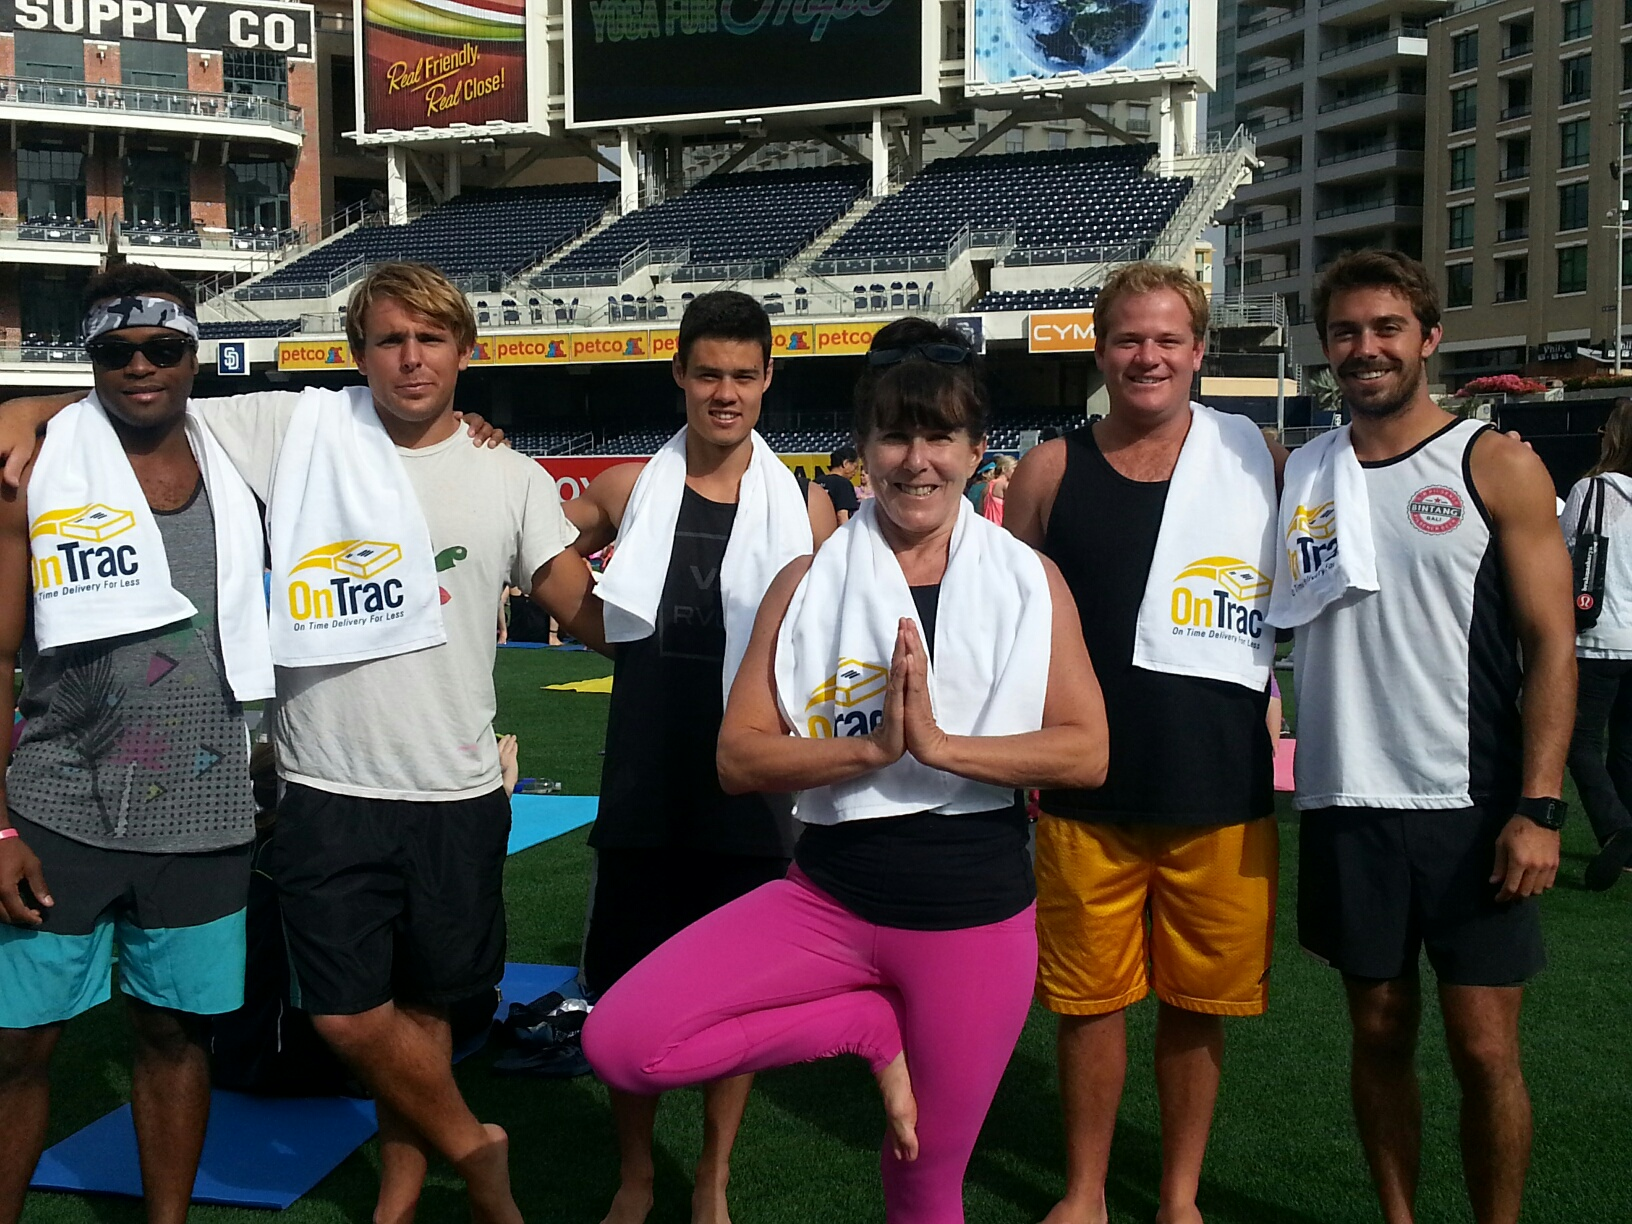 OnTrac supports City of Hope at Fourth Annual Yoga for Hope